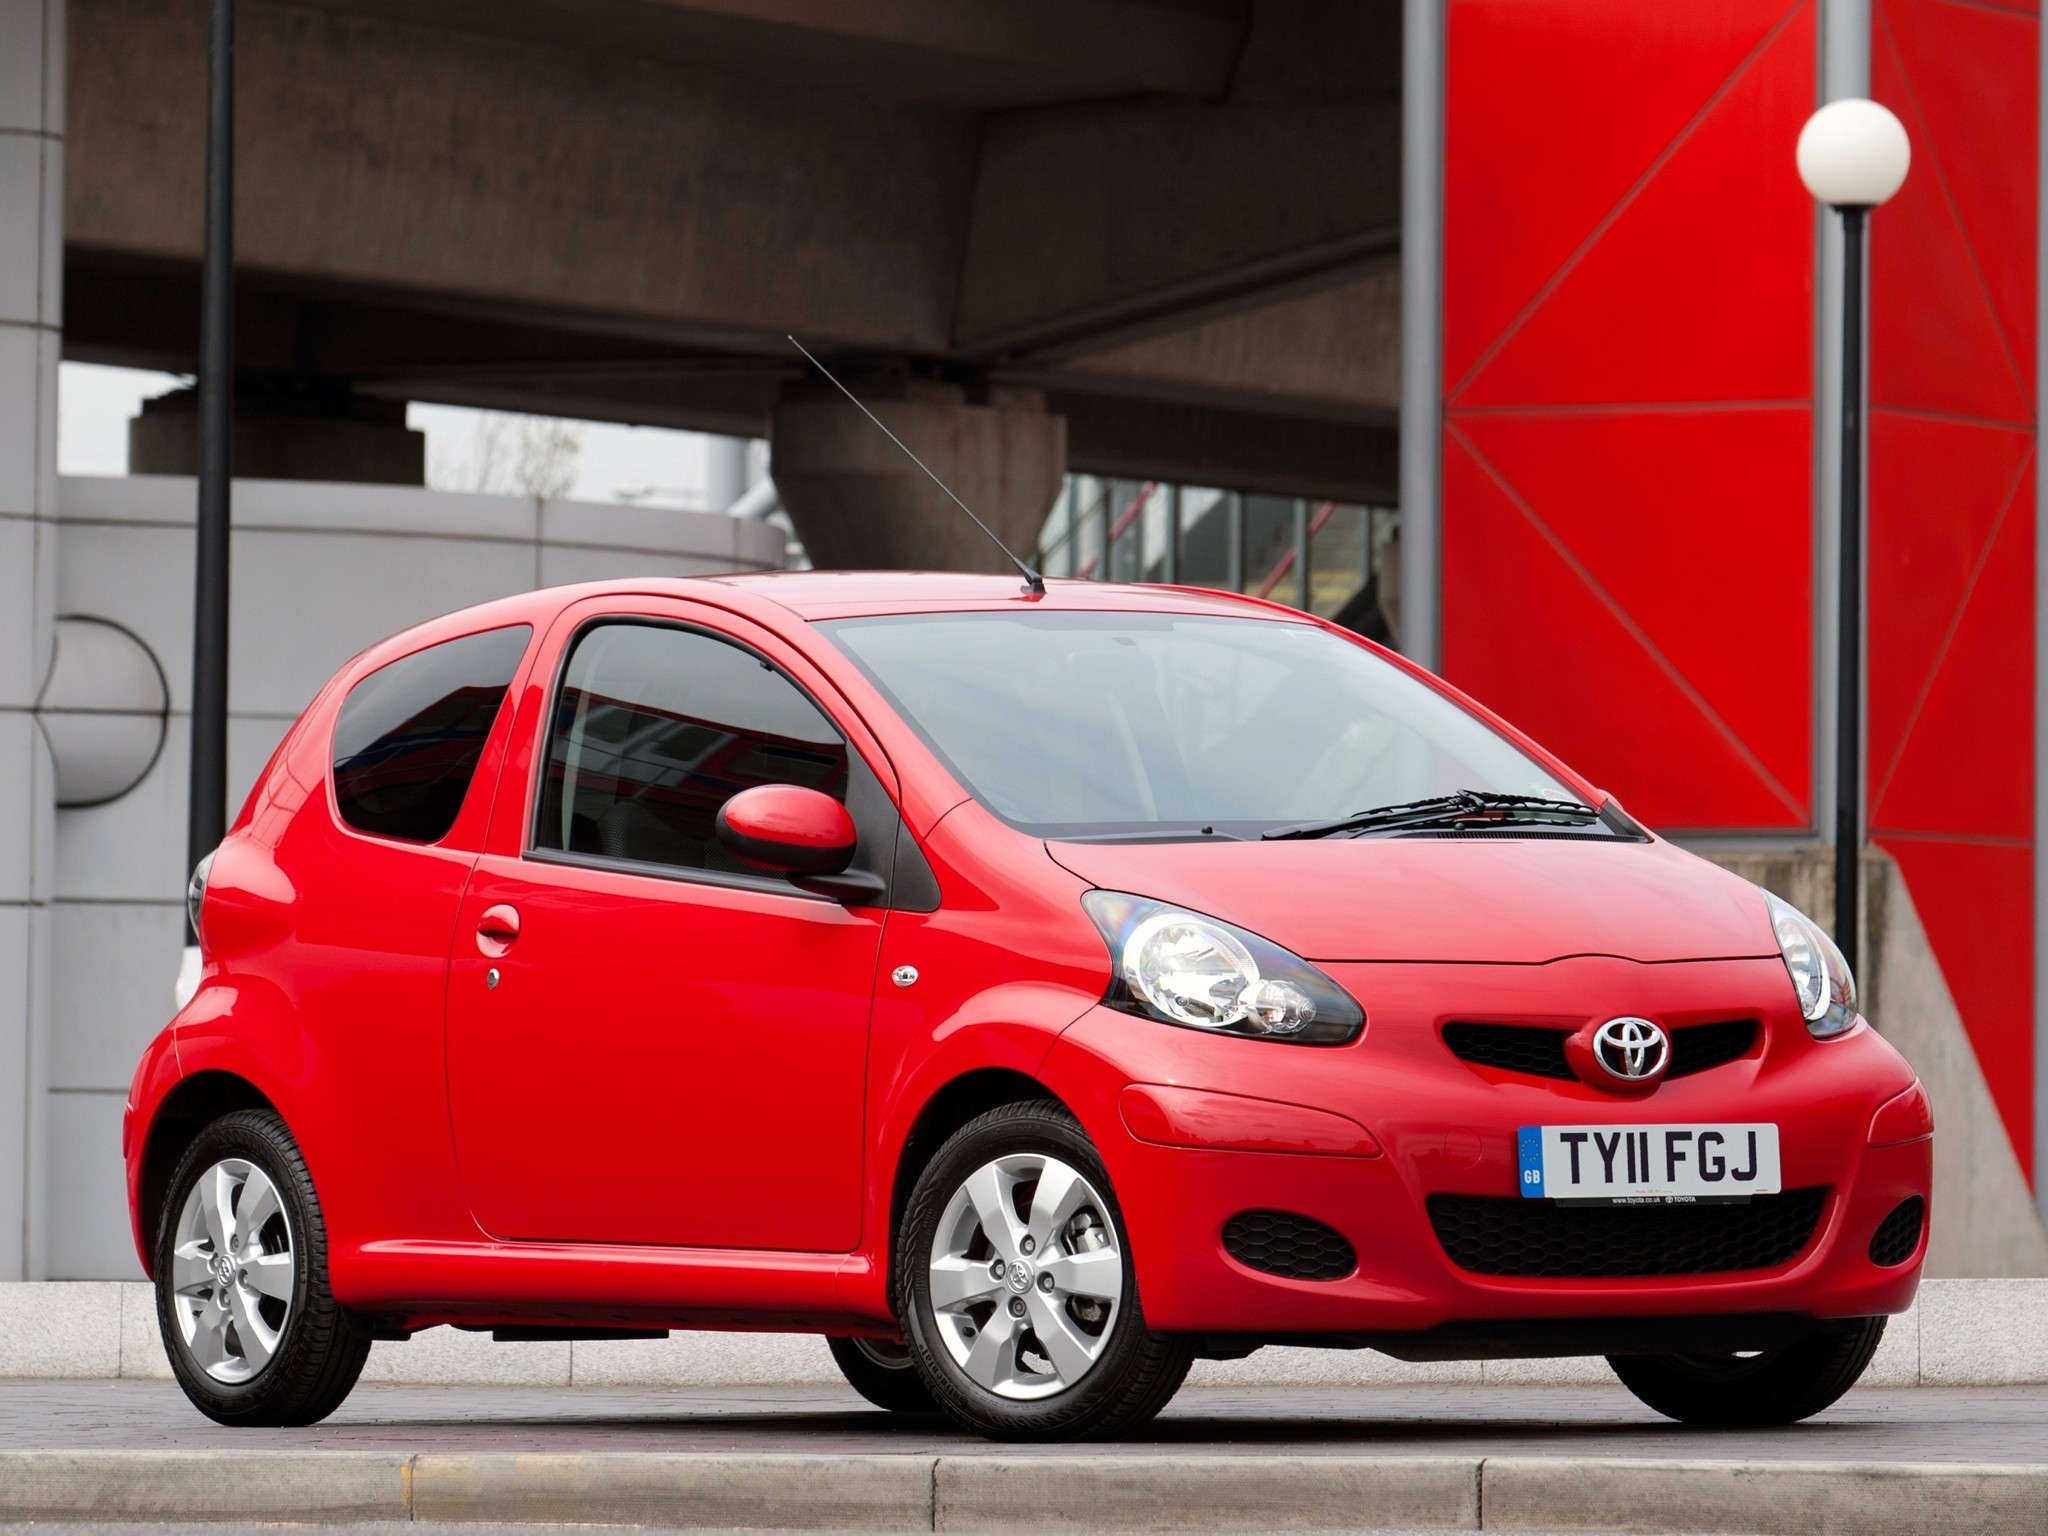 Build A Toyota >> TOYOTA Aygo 3 doors specs & photos - 2009, 2010, 2011, 2012, 2013, 2014 - autoevolution